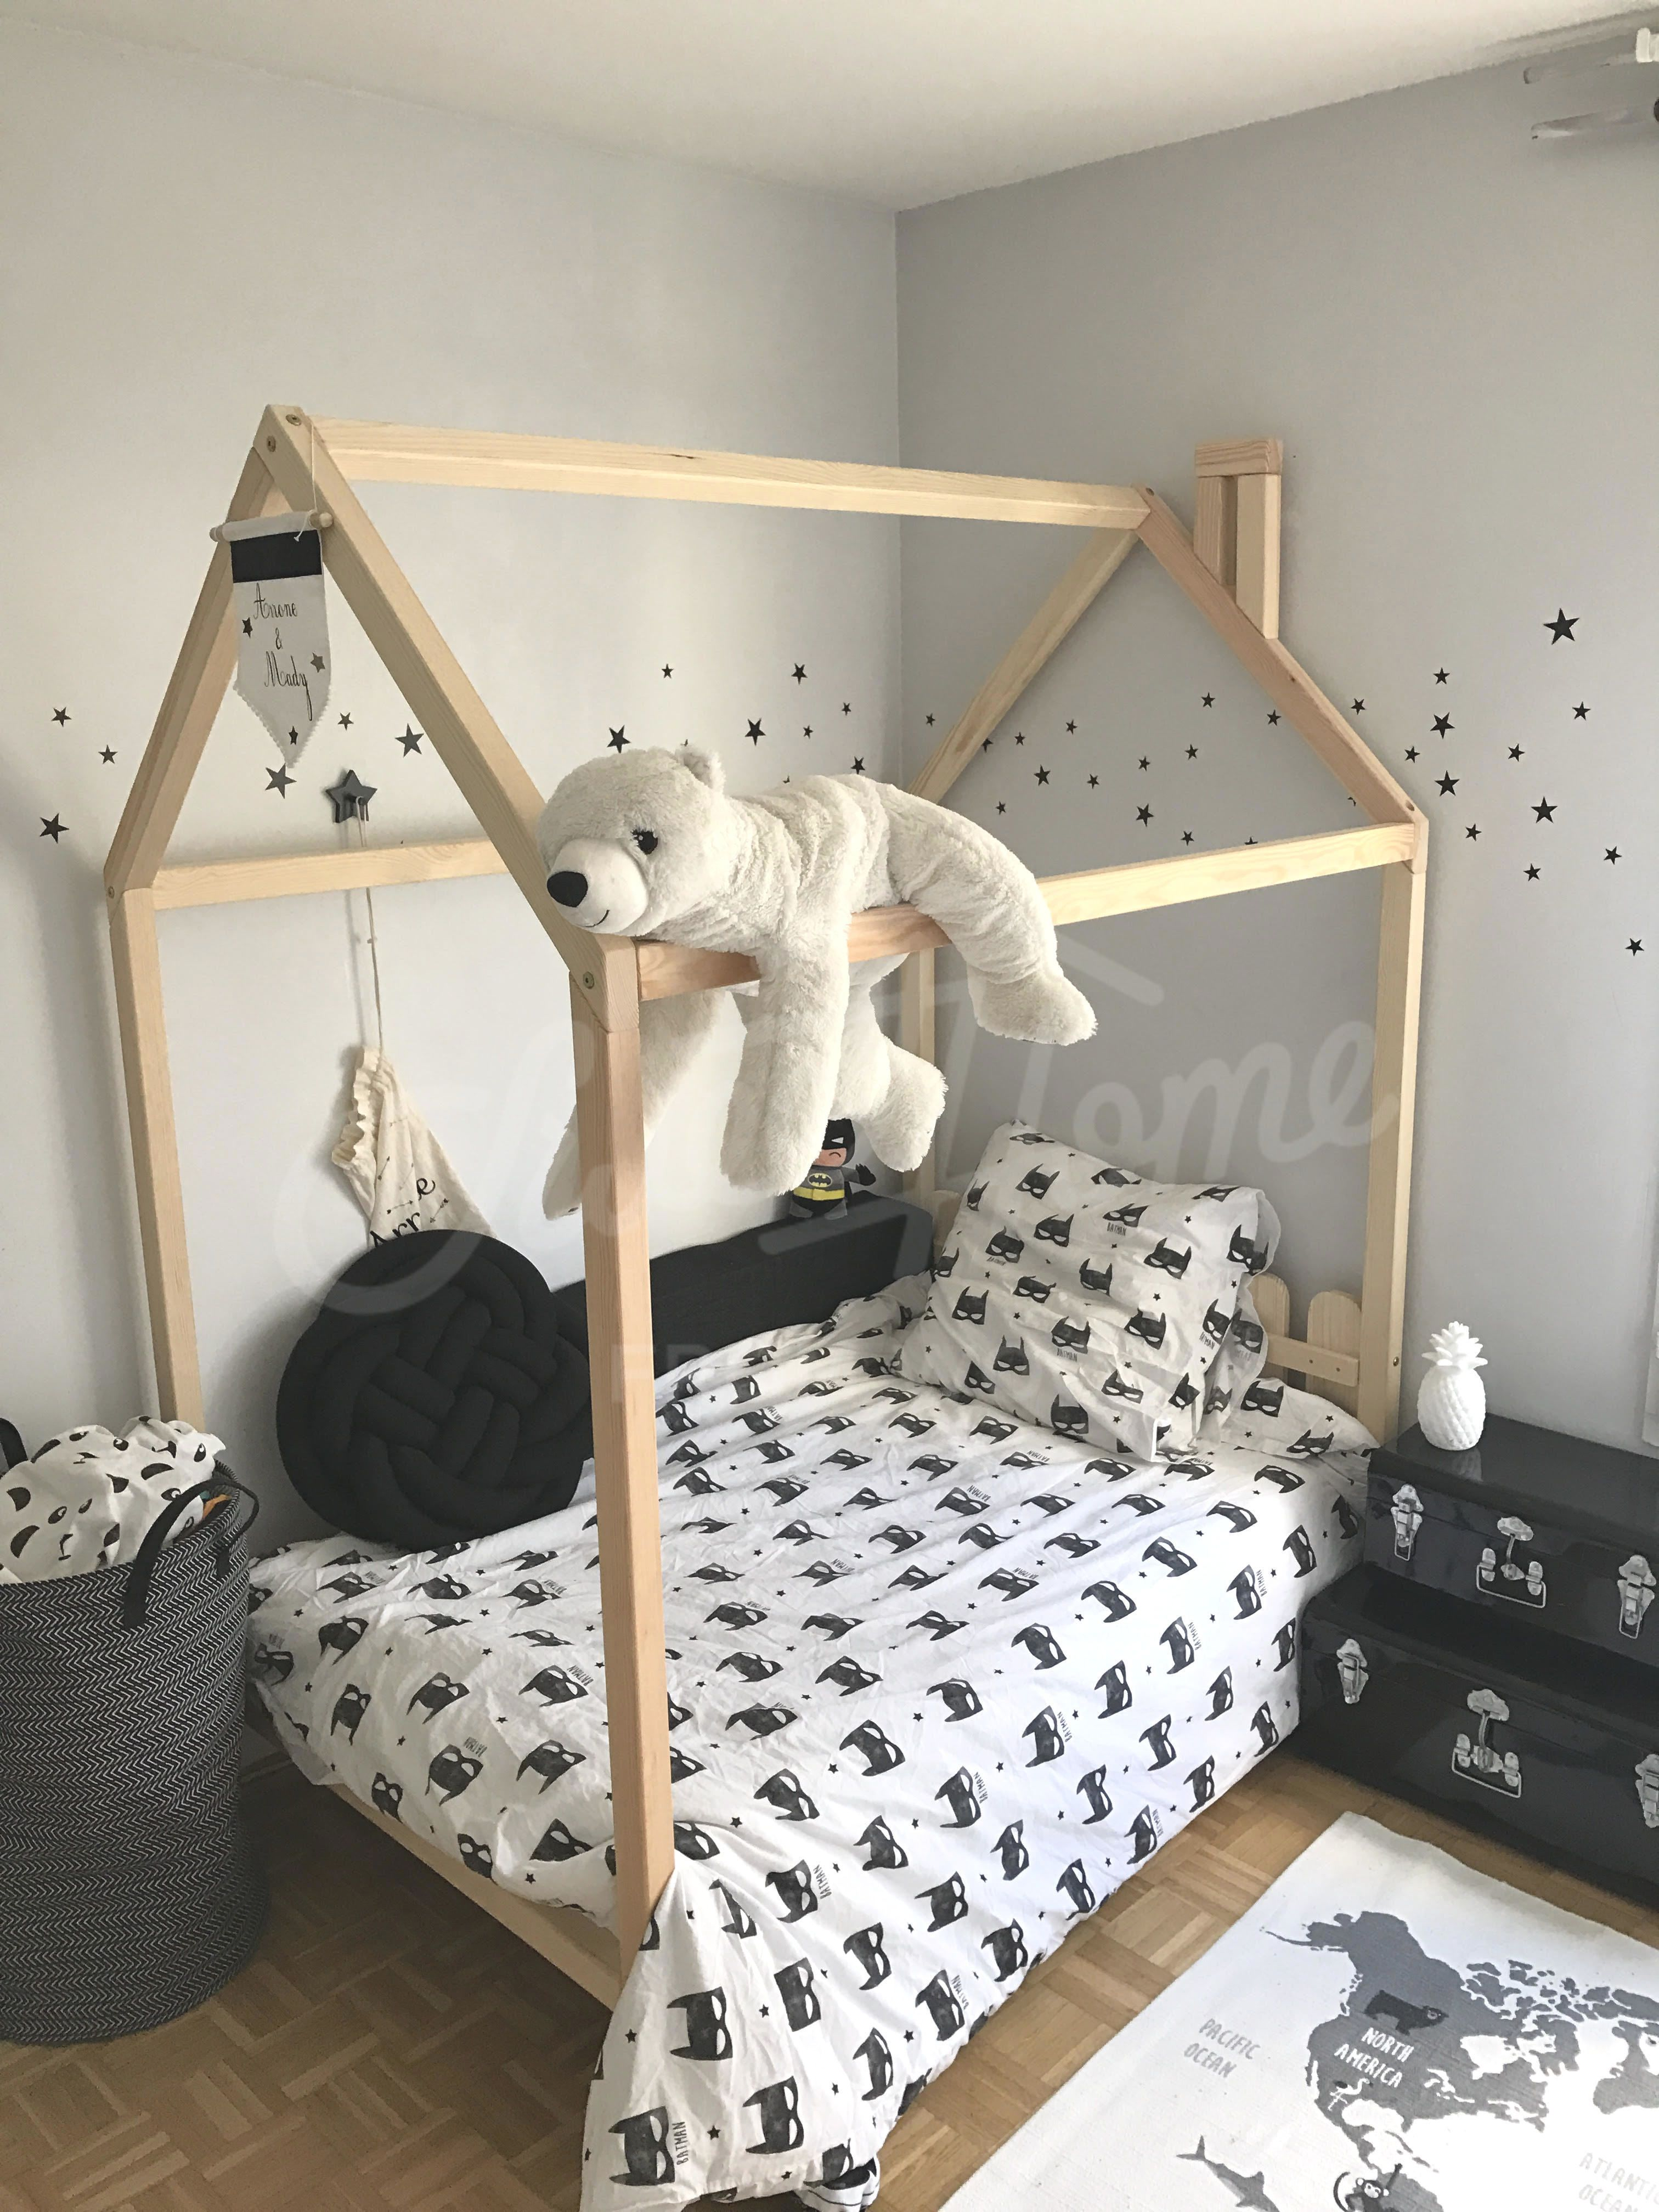 Kids teepee toddler bed house or house bed frame with